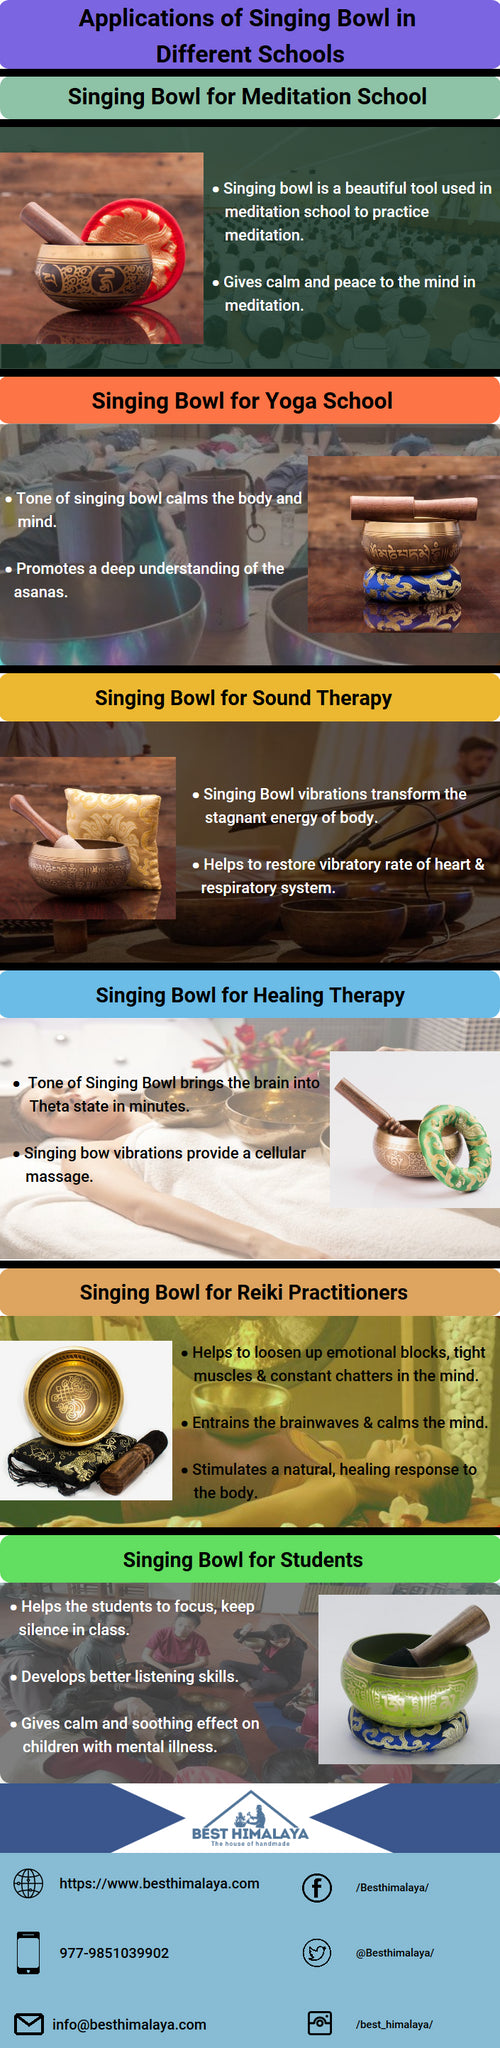 Singing Bowl Applications for Different Schools & Classrooms